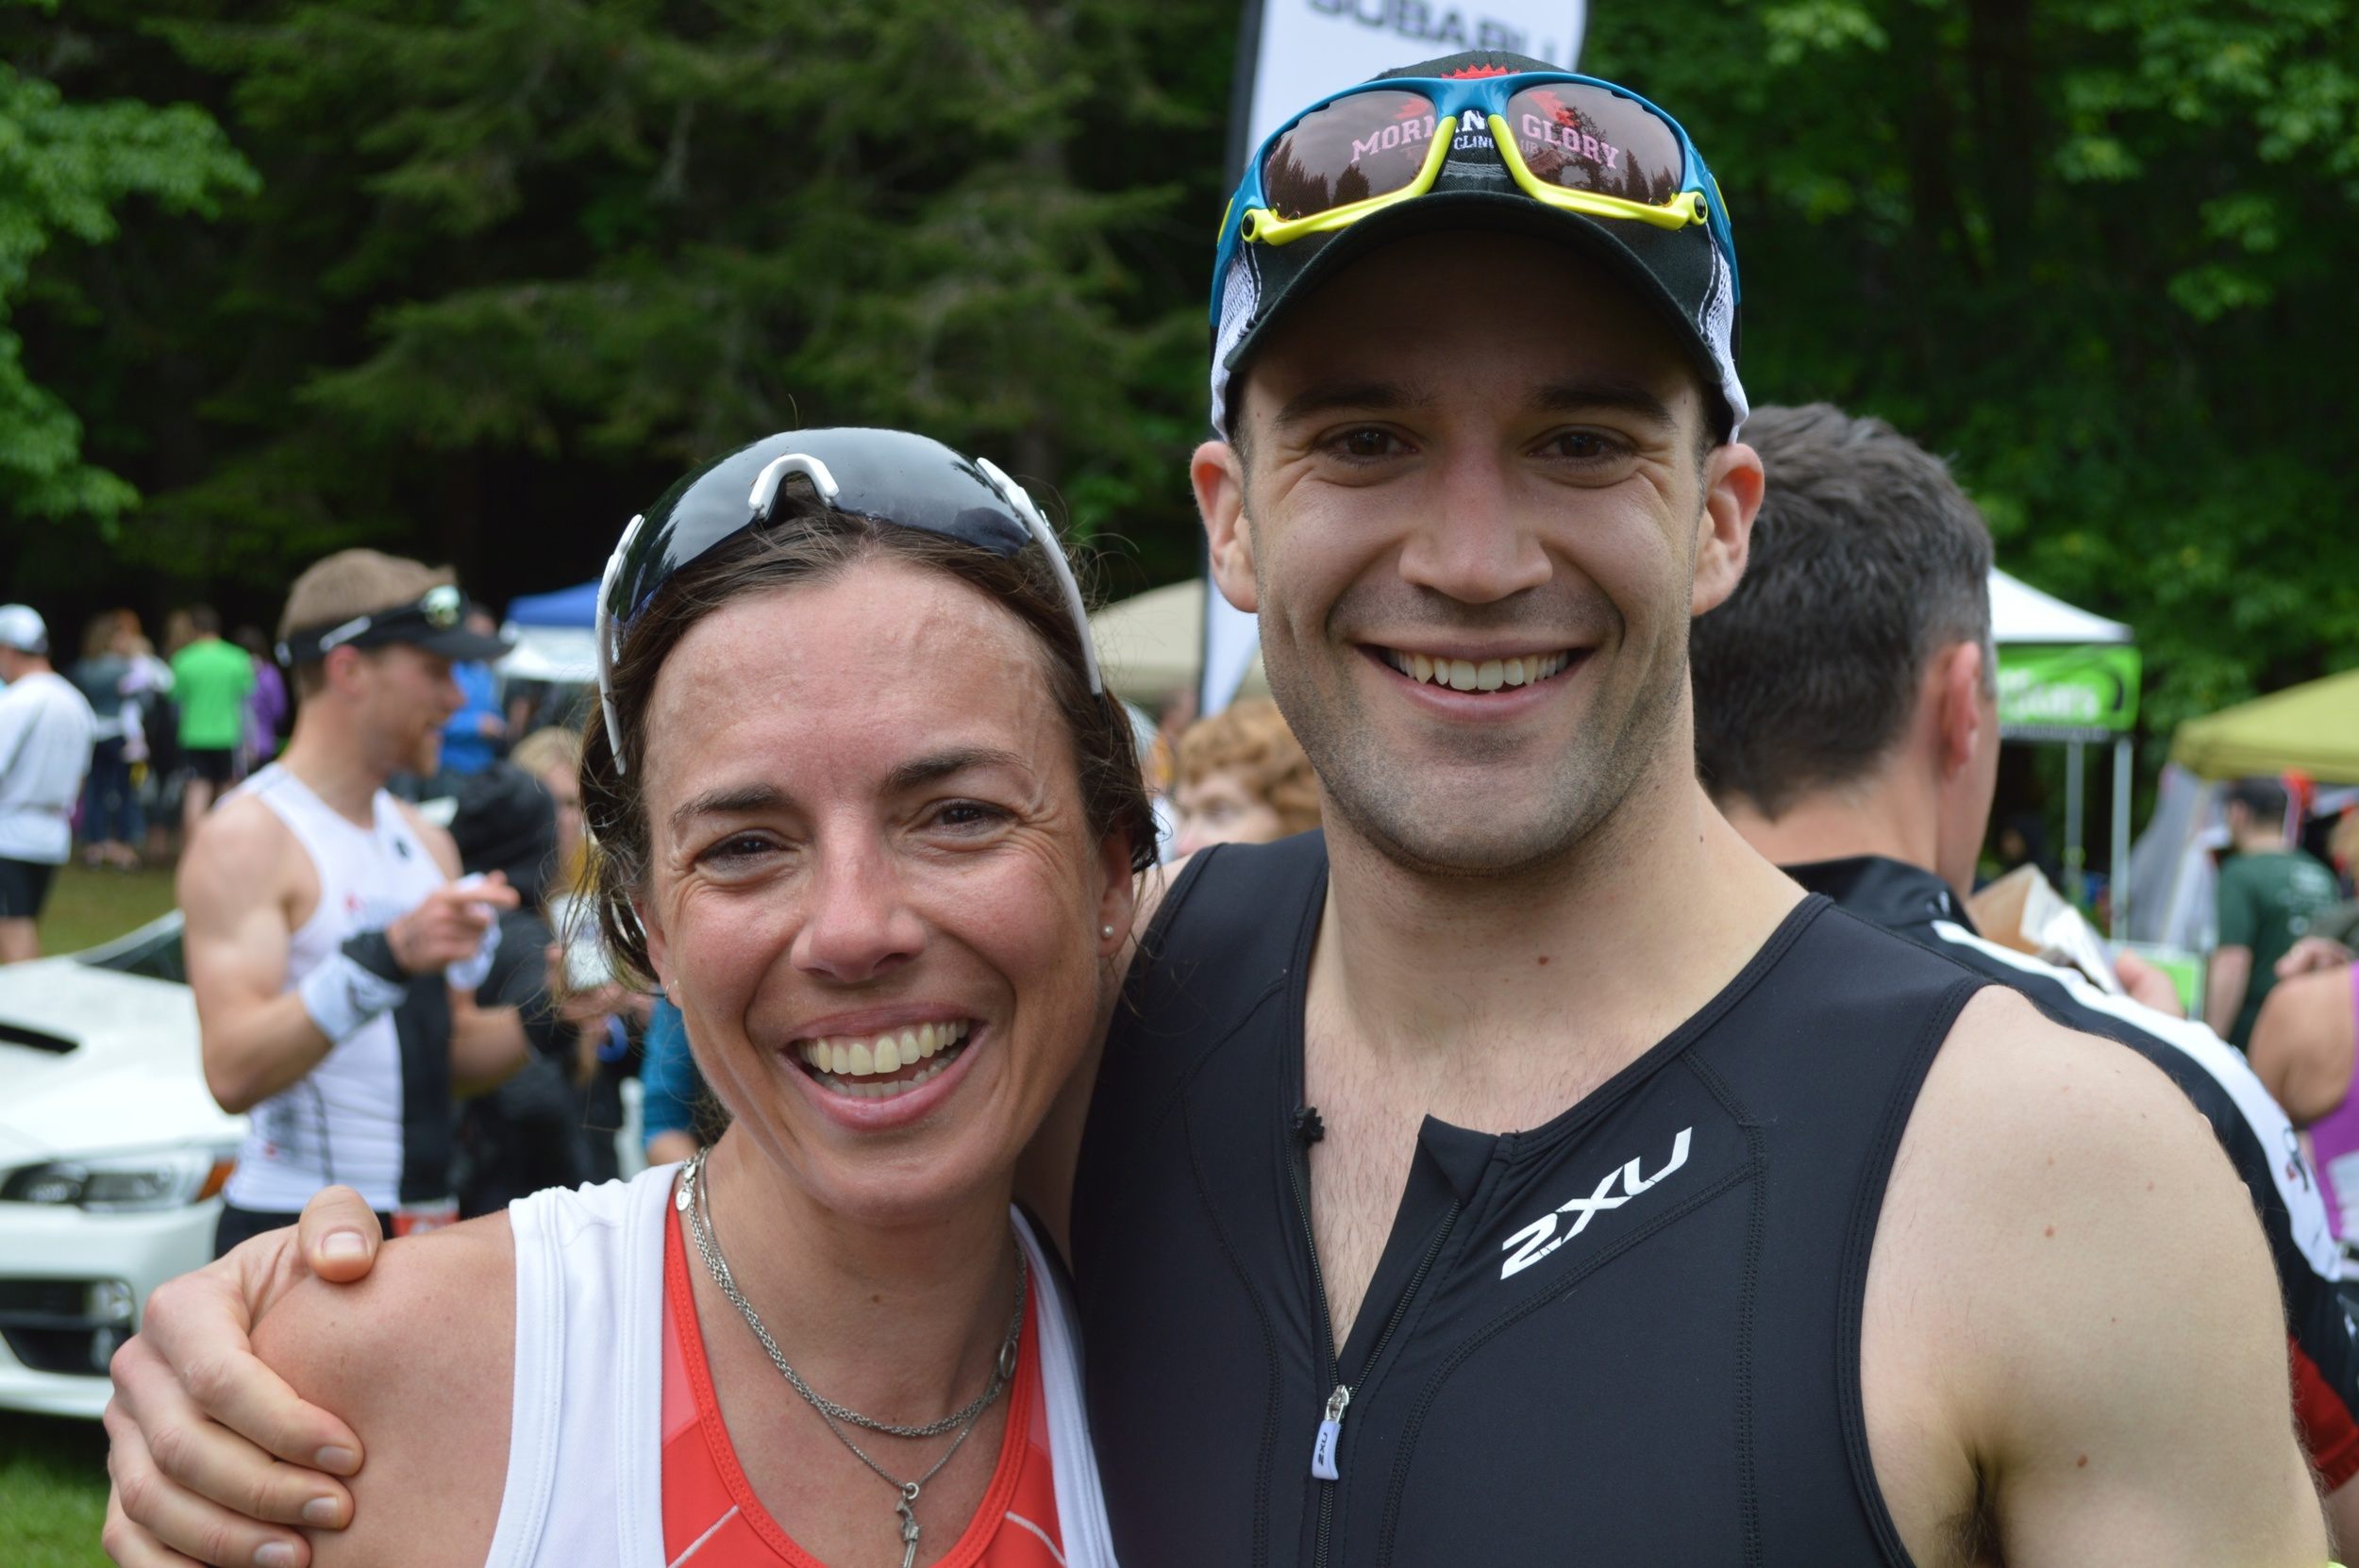 With racing buddy Juliet Korver. This lady is fast!